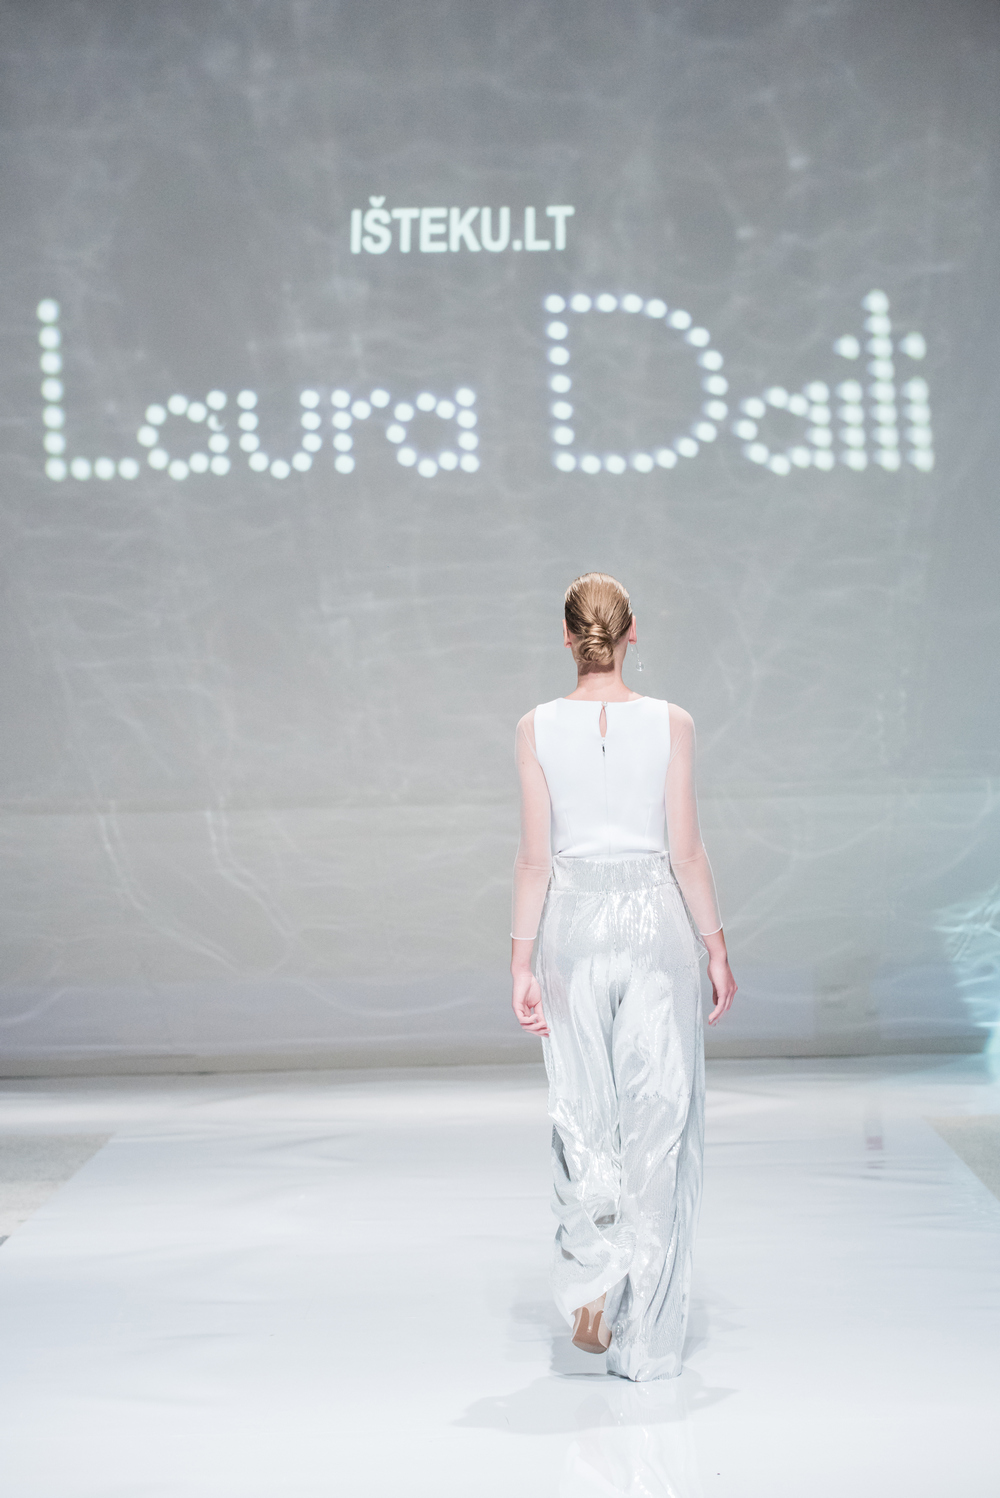 Laura Daili Bridal Collection 2017 Isteku lt (21)